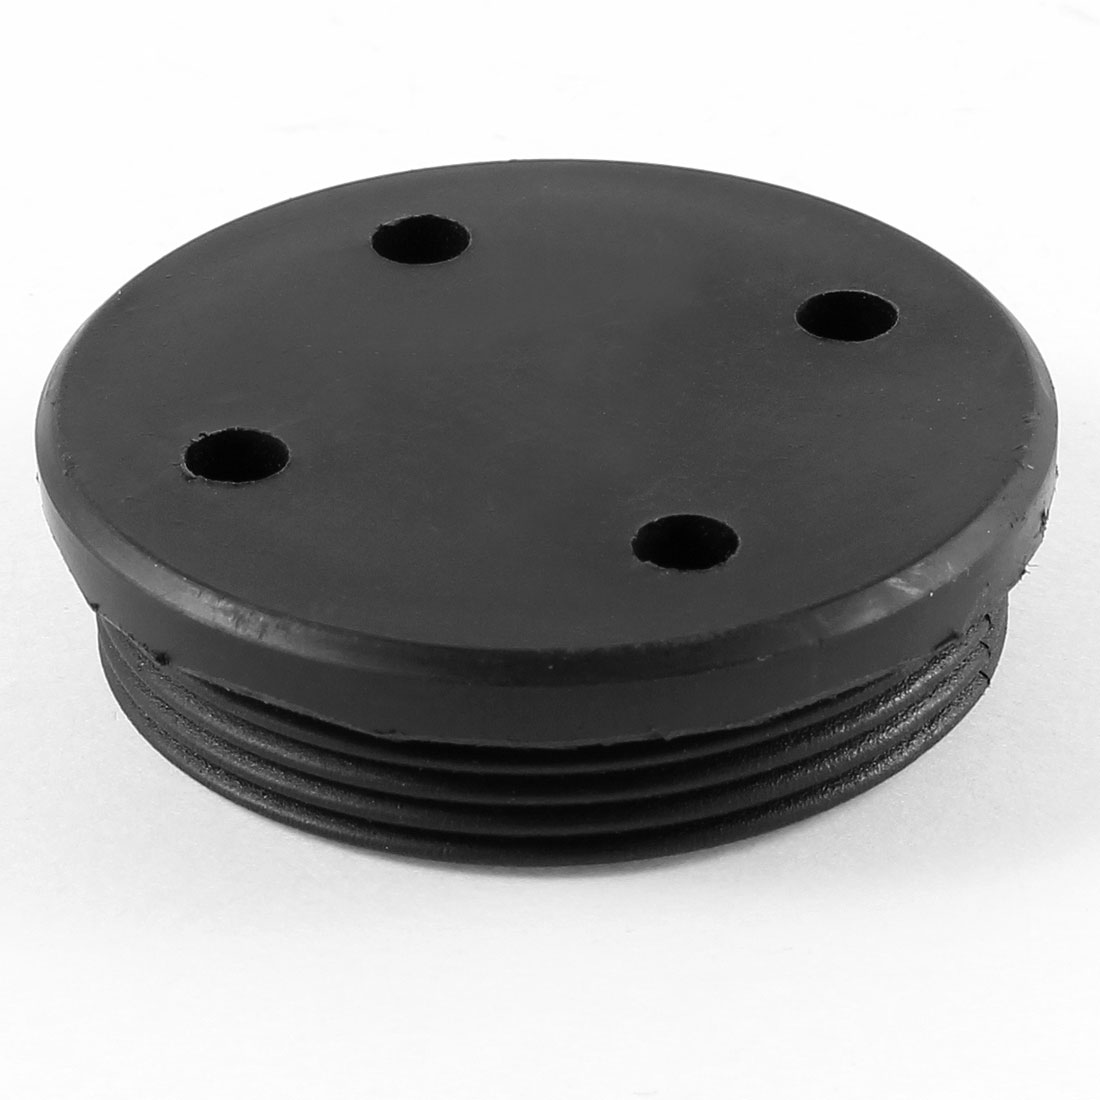 Electric Hammer Replacement Black Plastic Oil Cap for Z1C-MH-26